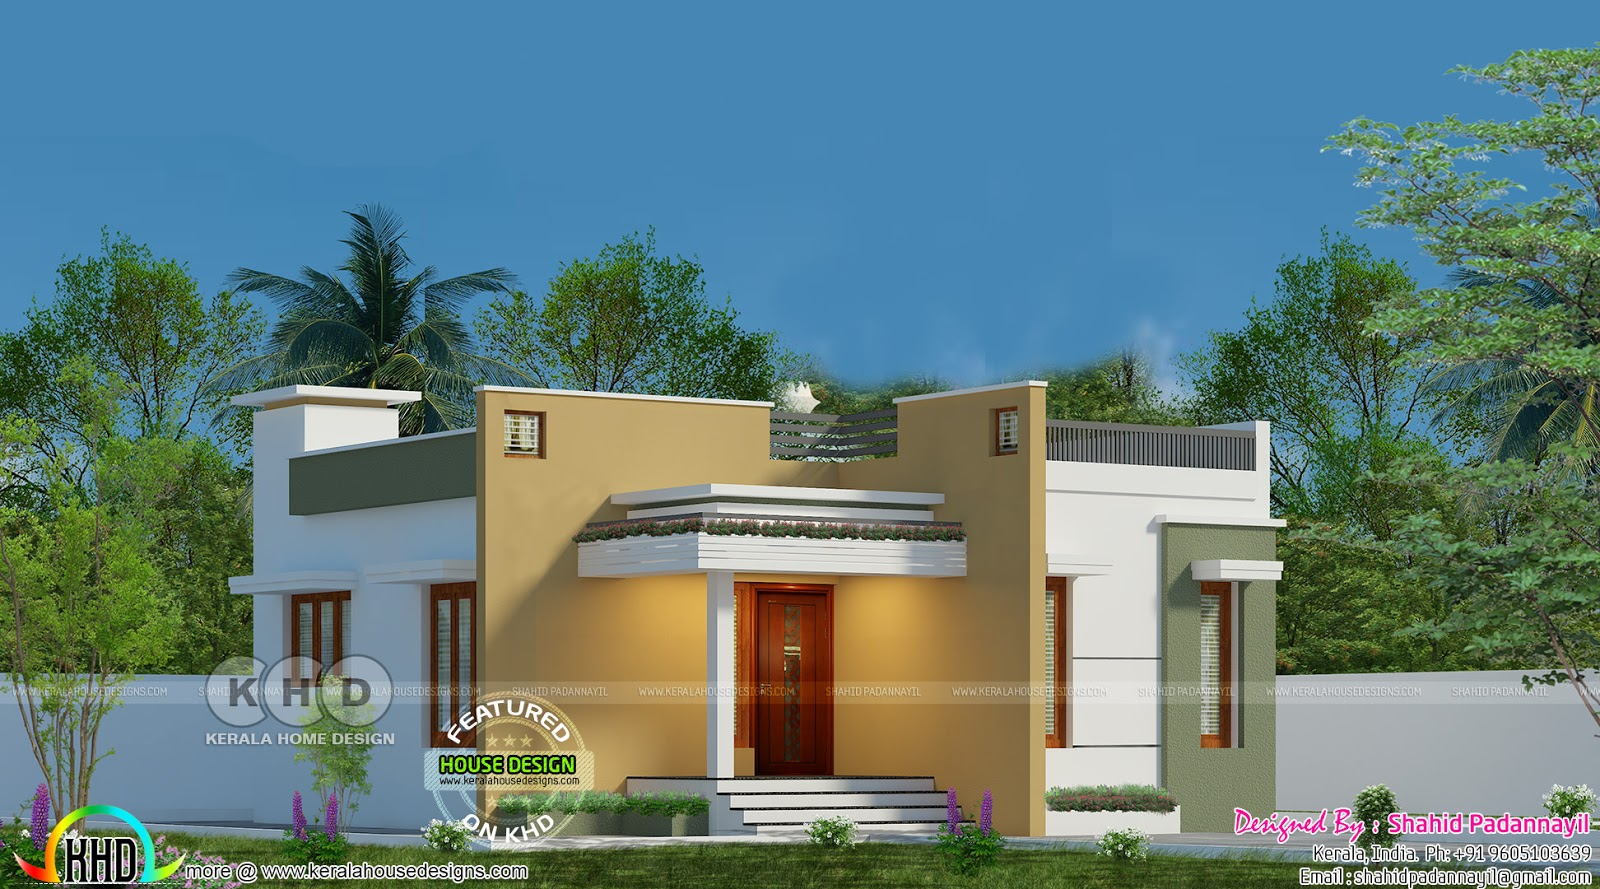 Low Cost Kerala Home Design Single Floor Kerala Home